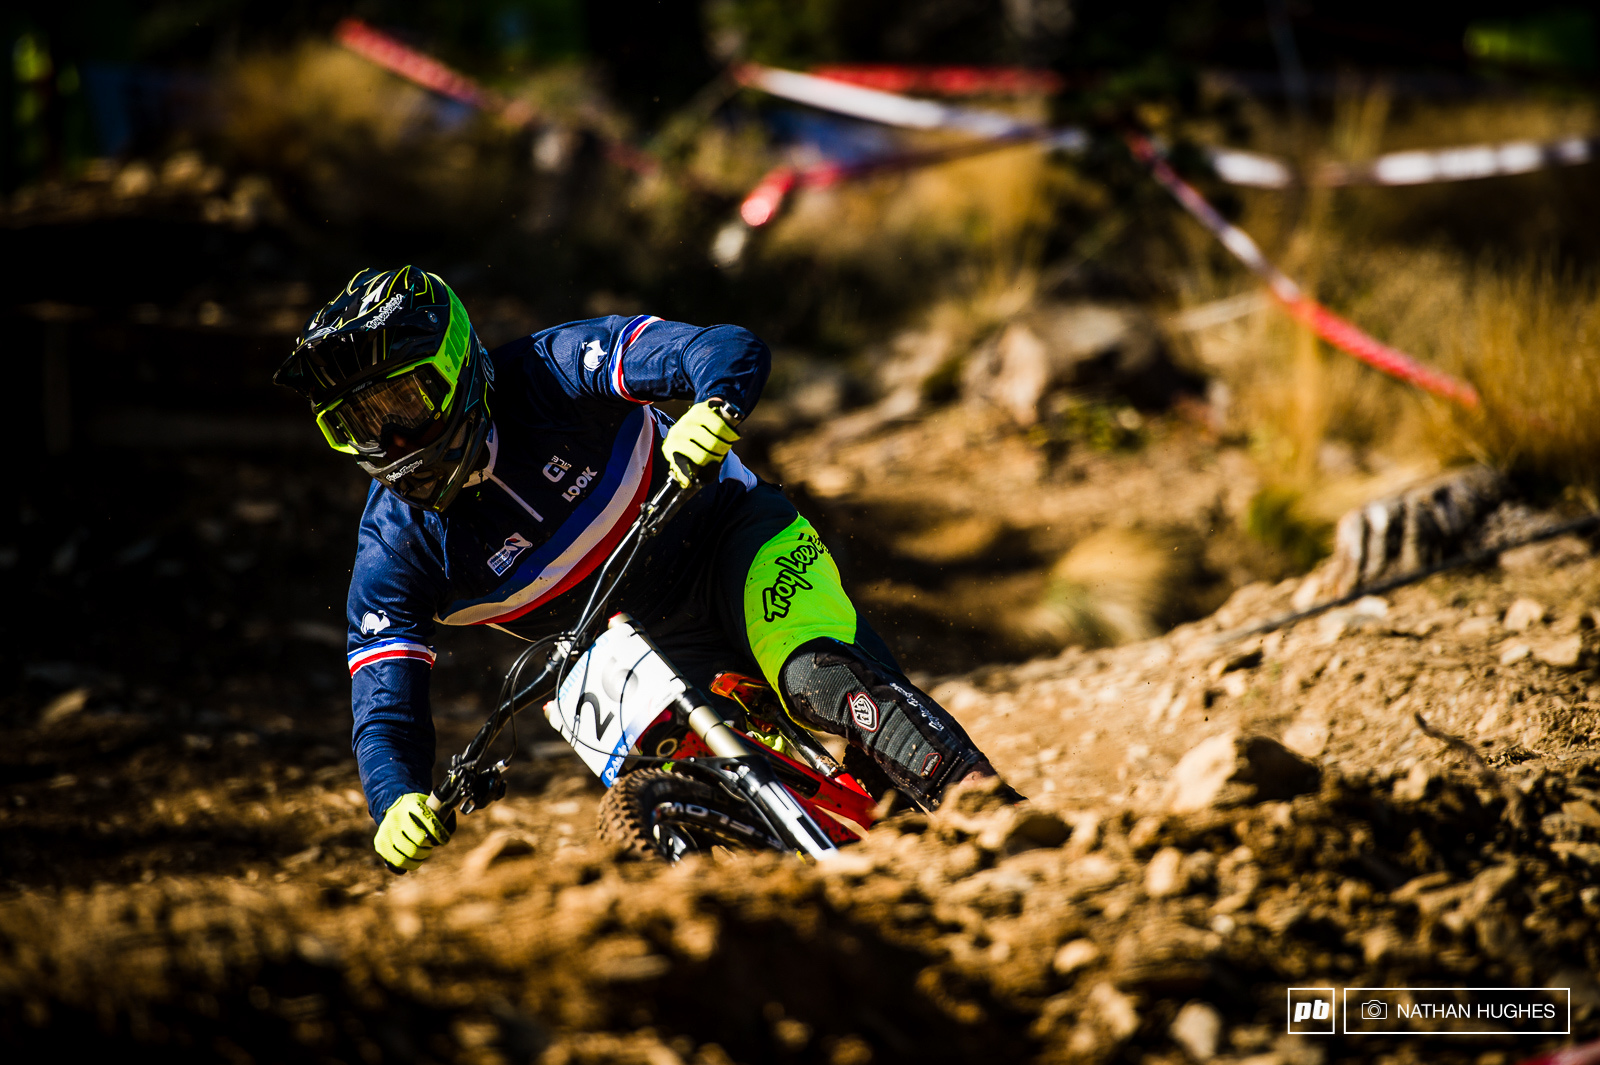 Amaury Pierrom continued to prove his top 20 status with another first class result on arguably the toughest track to round out the season.